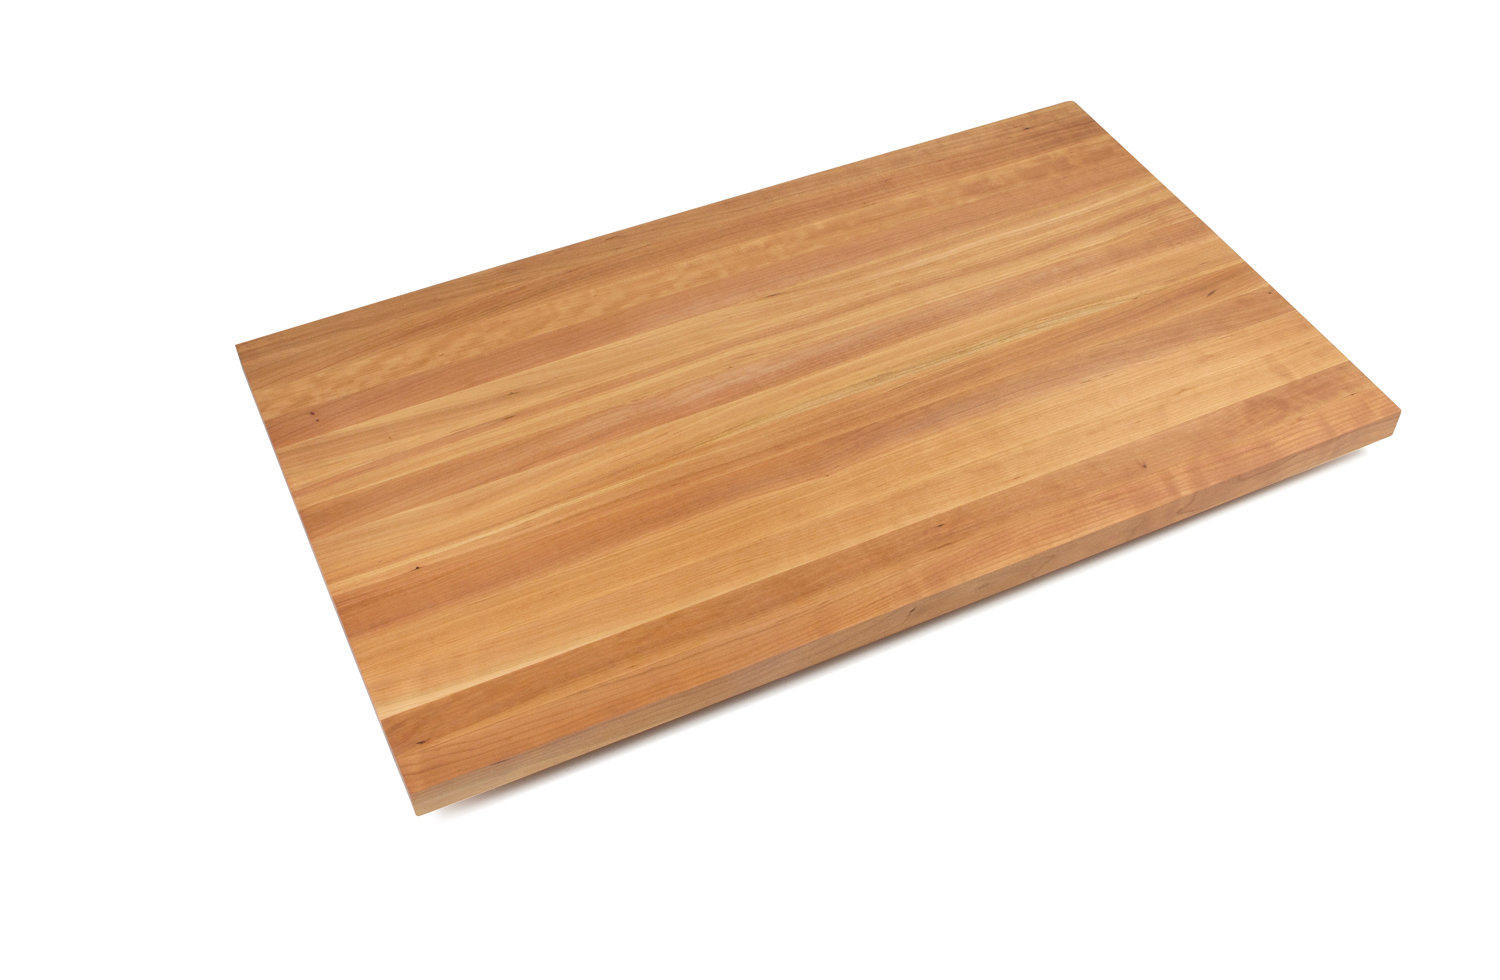 2.25 in. thick butcher block countertops cherry edge grain